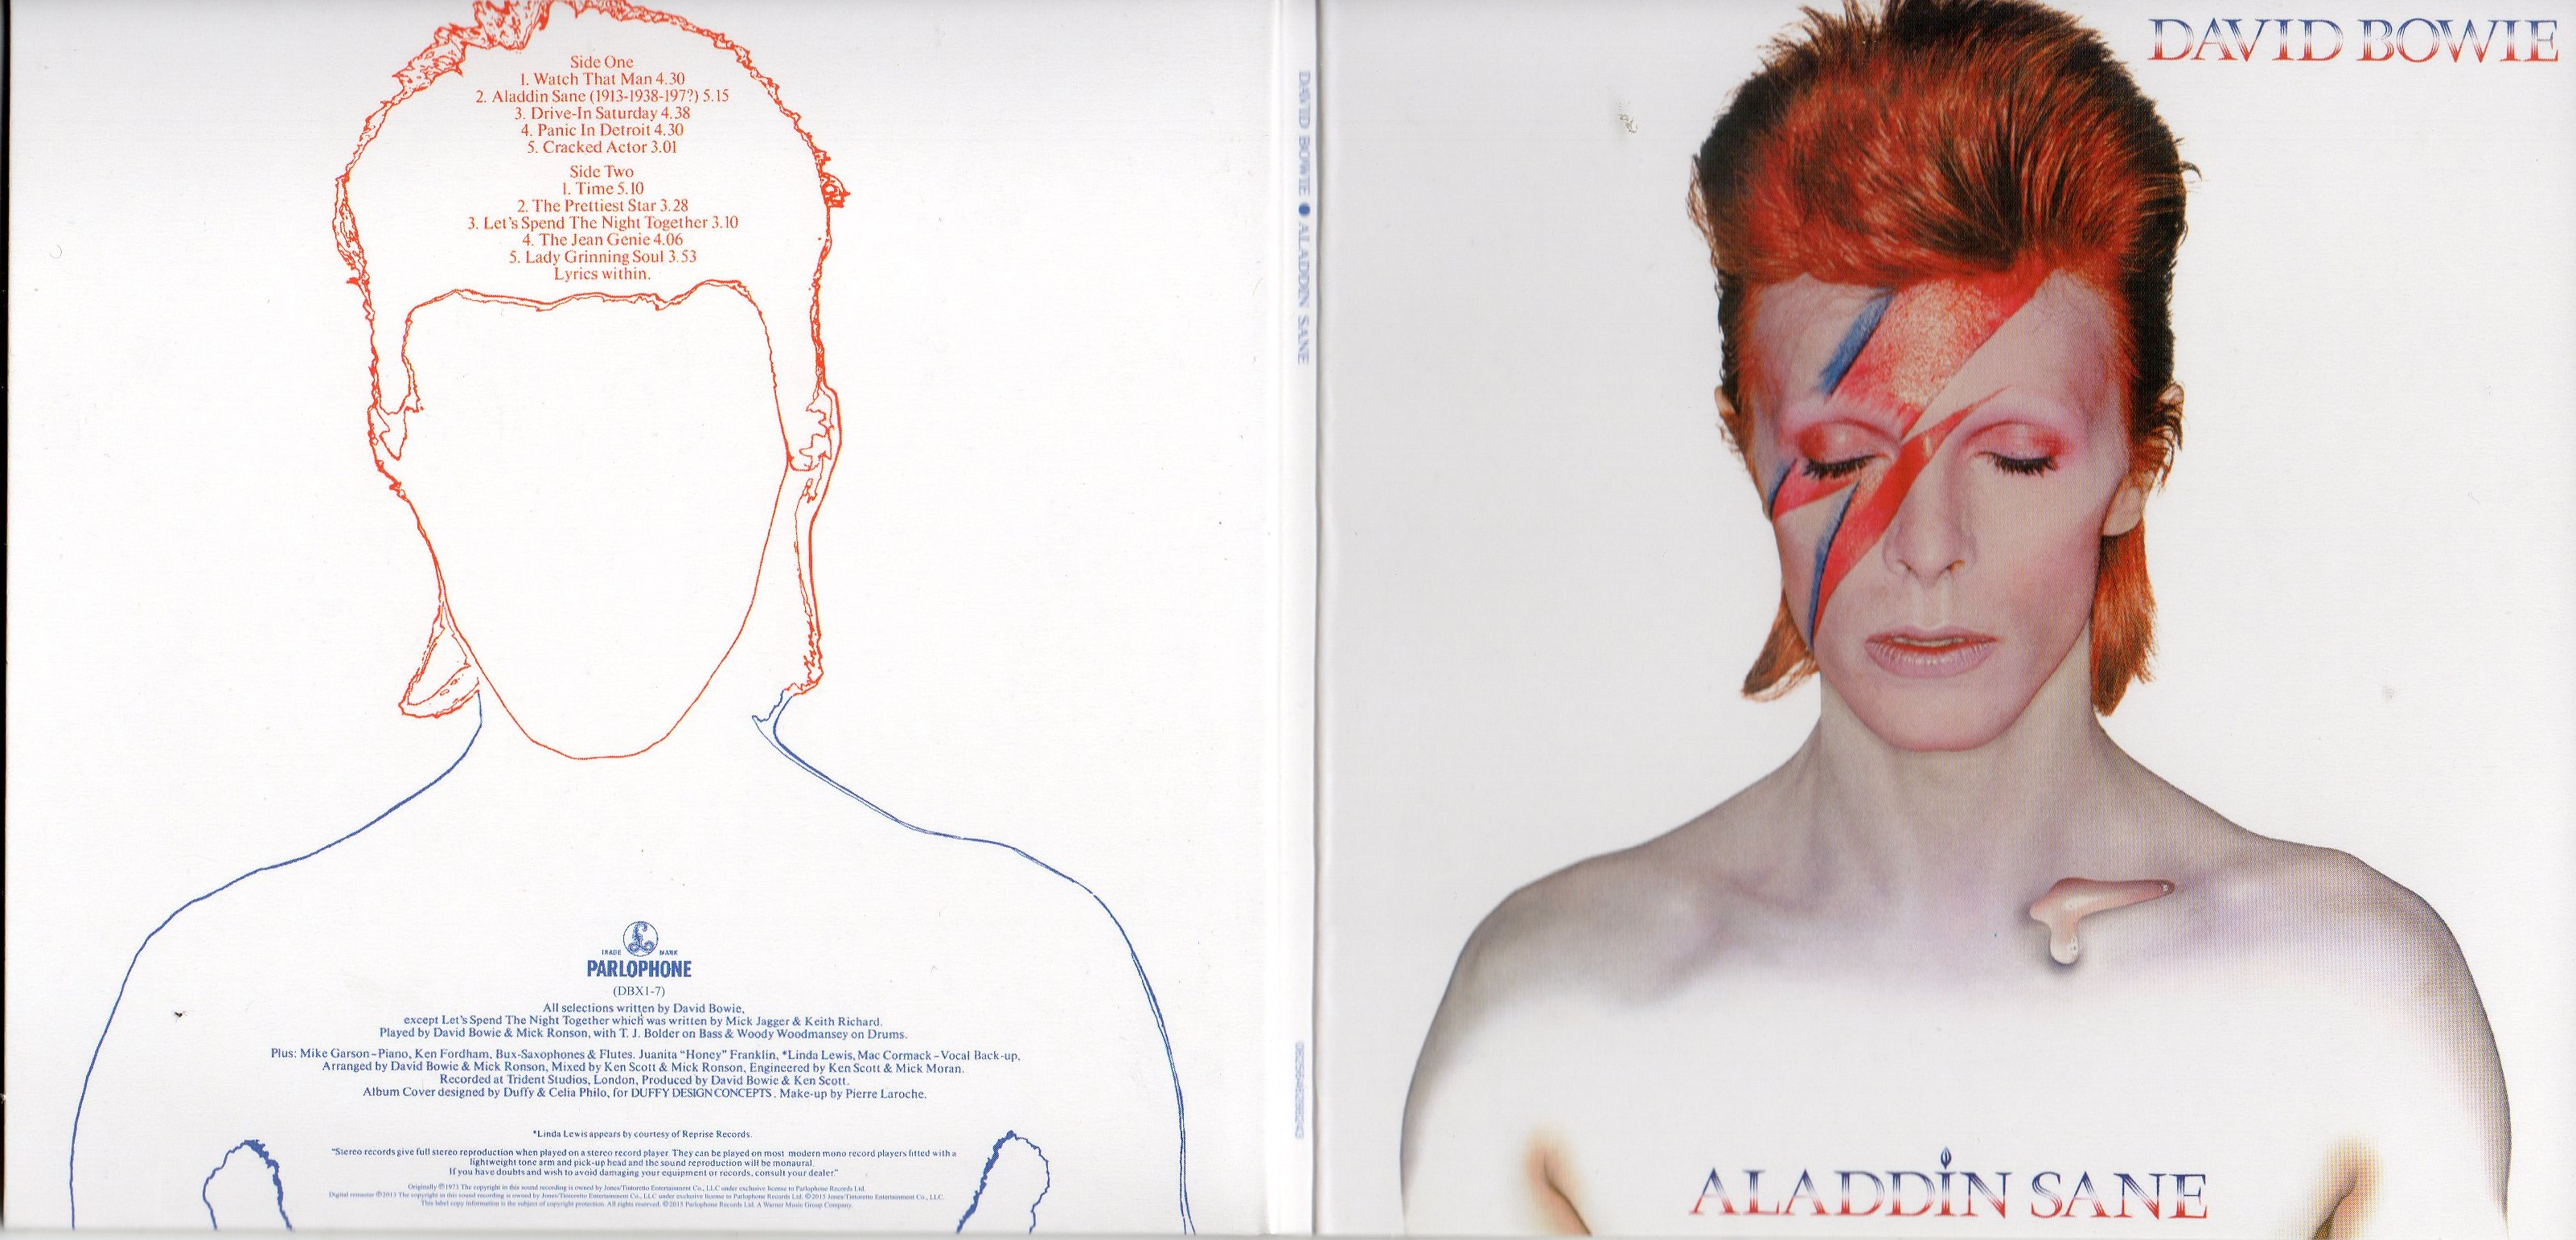 David BOWIE - Aladdin Sane (1973 - Mini Lp Replica Gatefold Card Sleeve - 10-track)